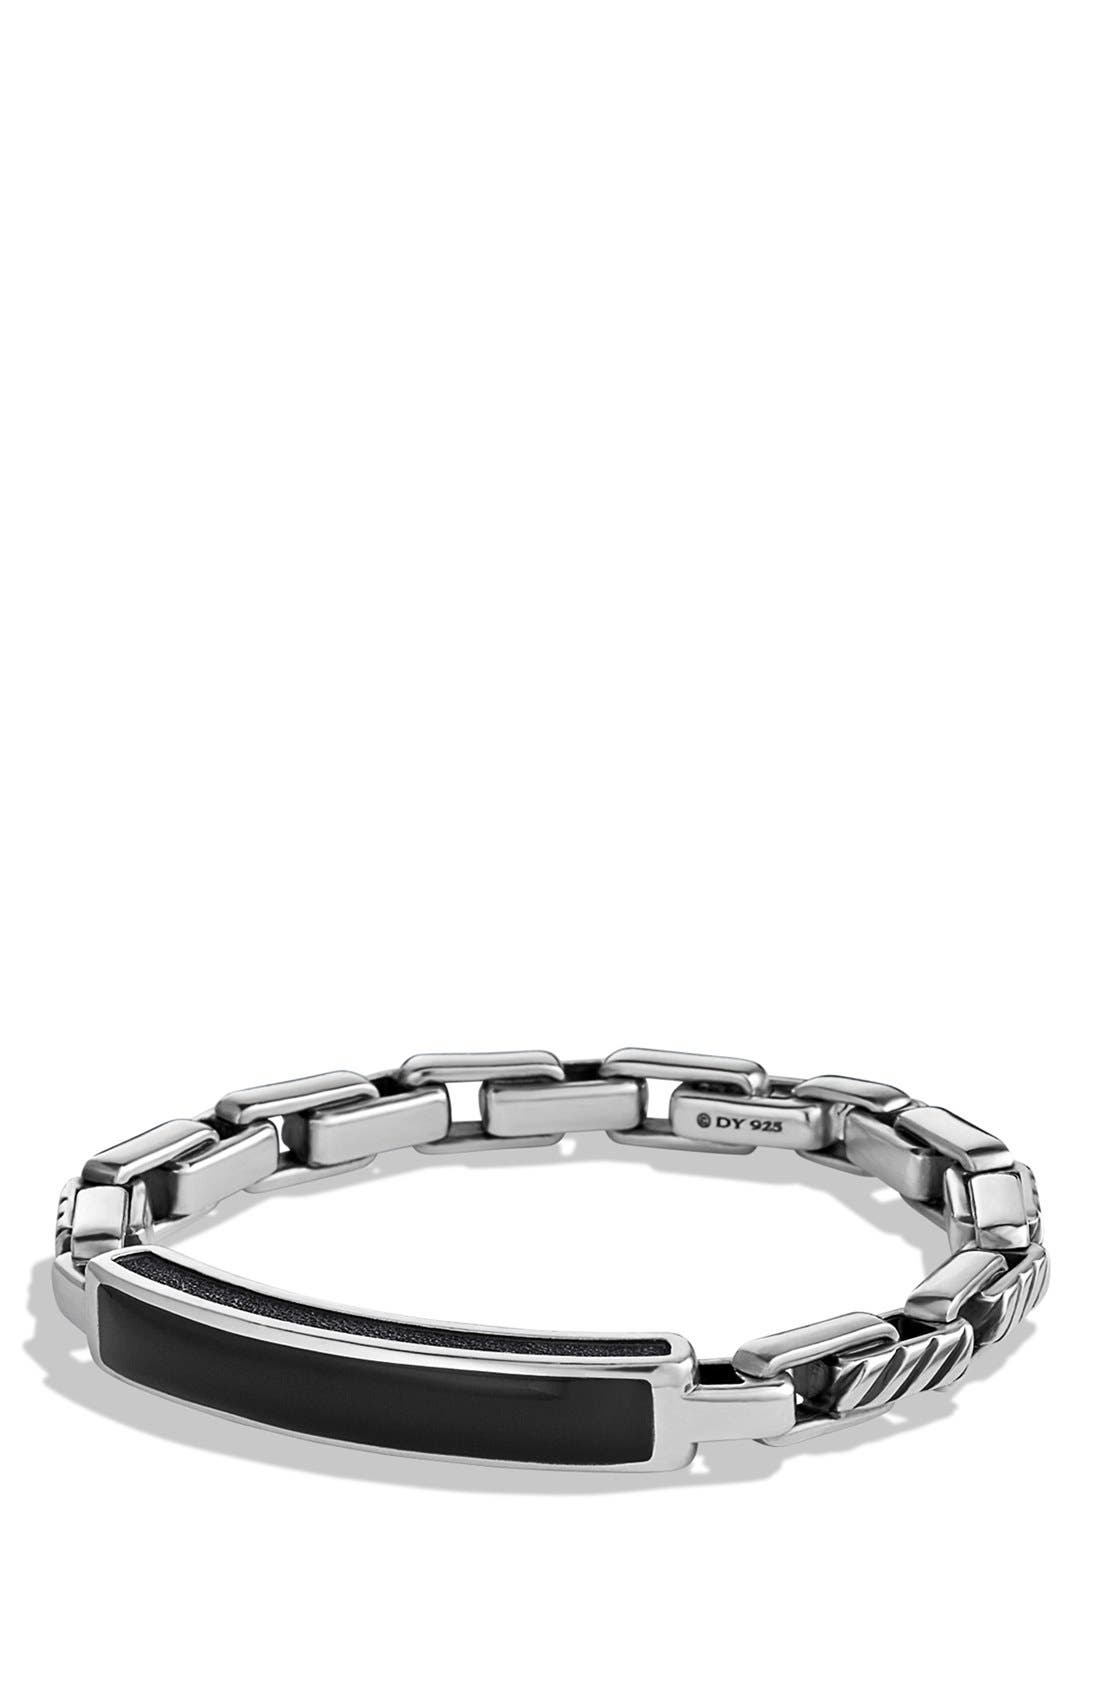 Alternate Image 1 Selected - David Yurman ' Modern Cable' ID Bracelet